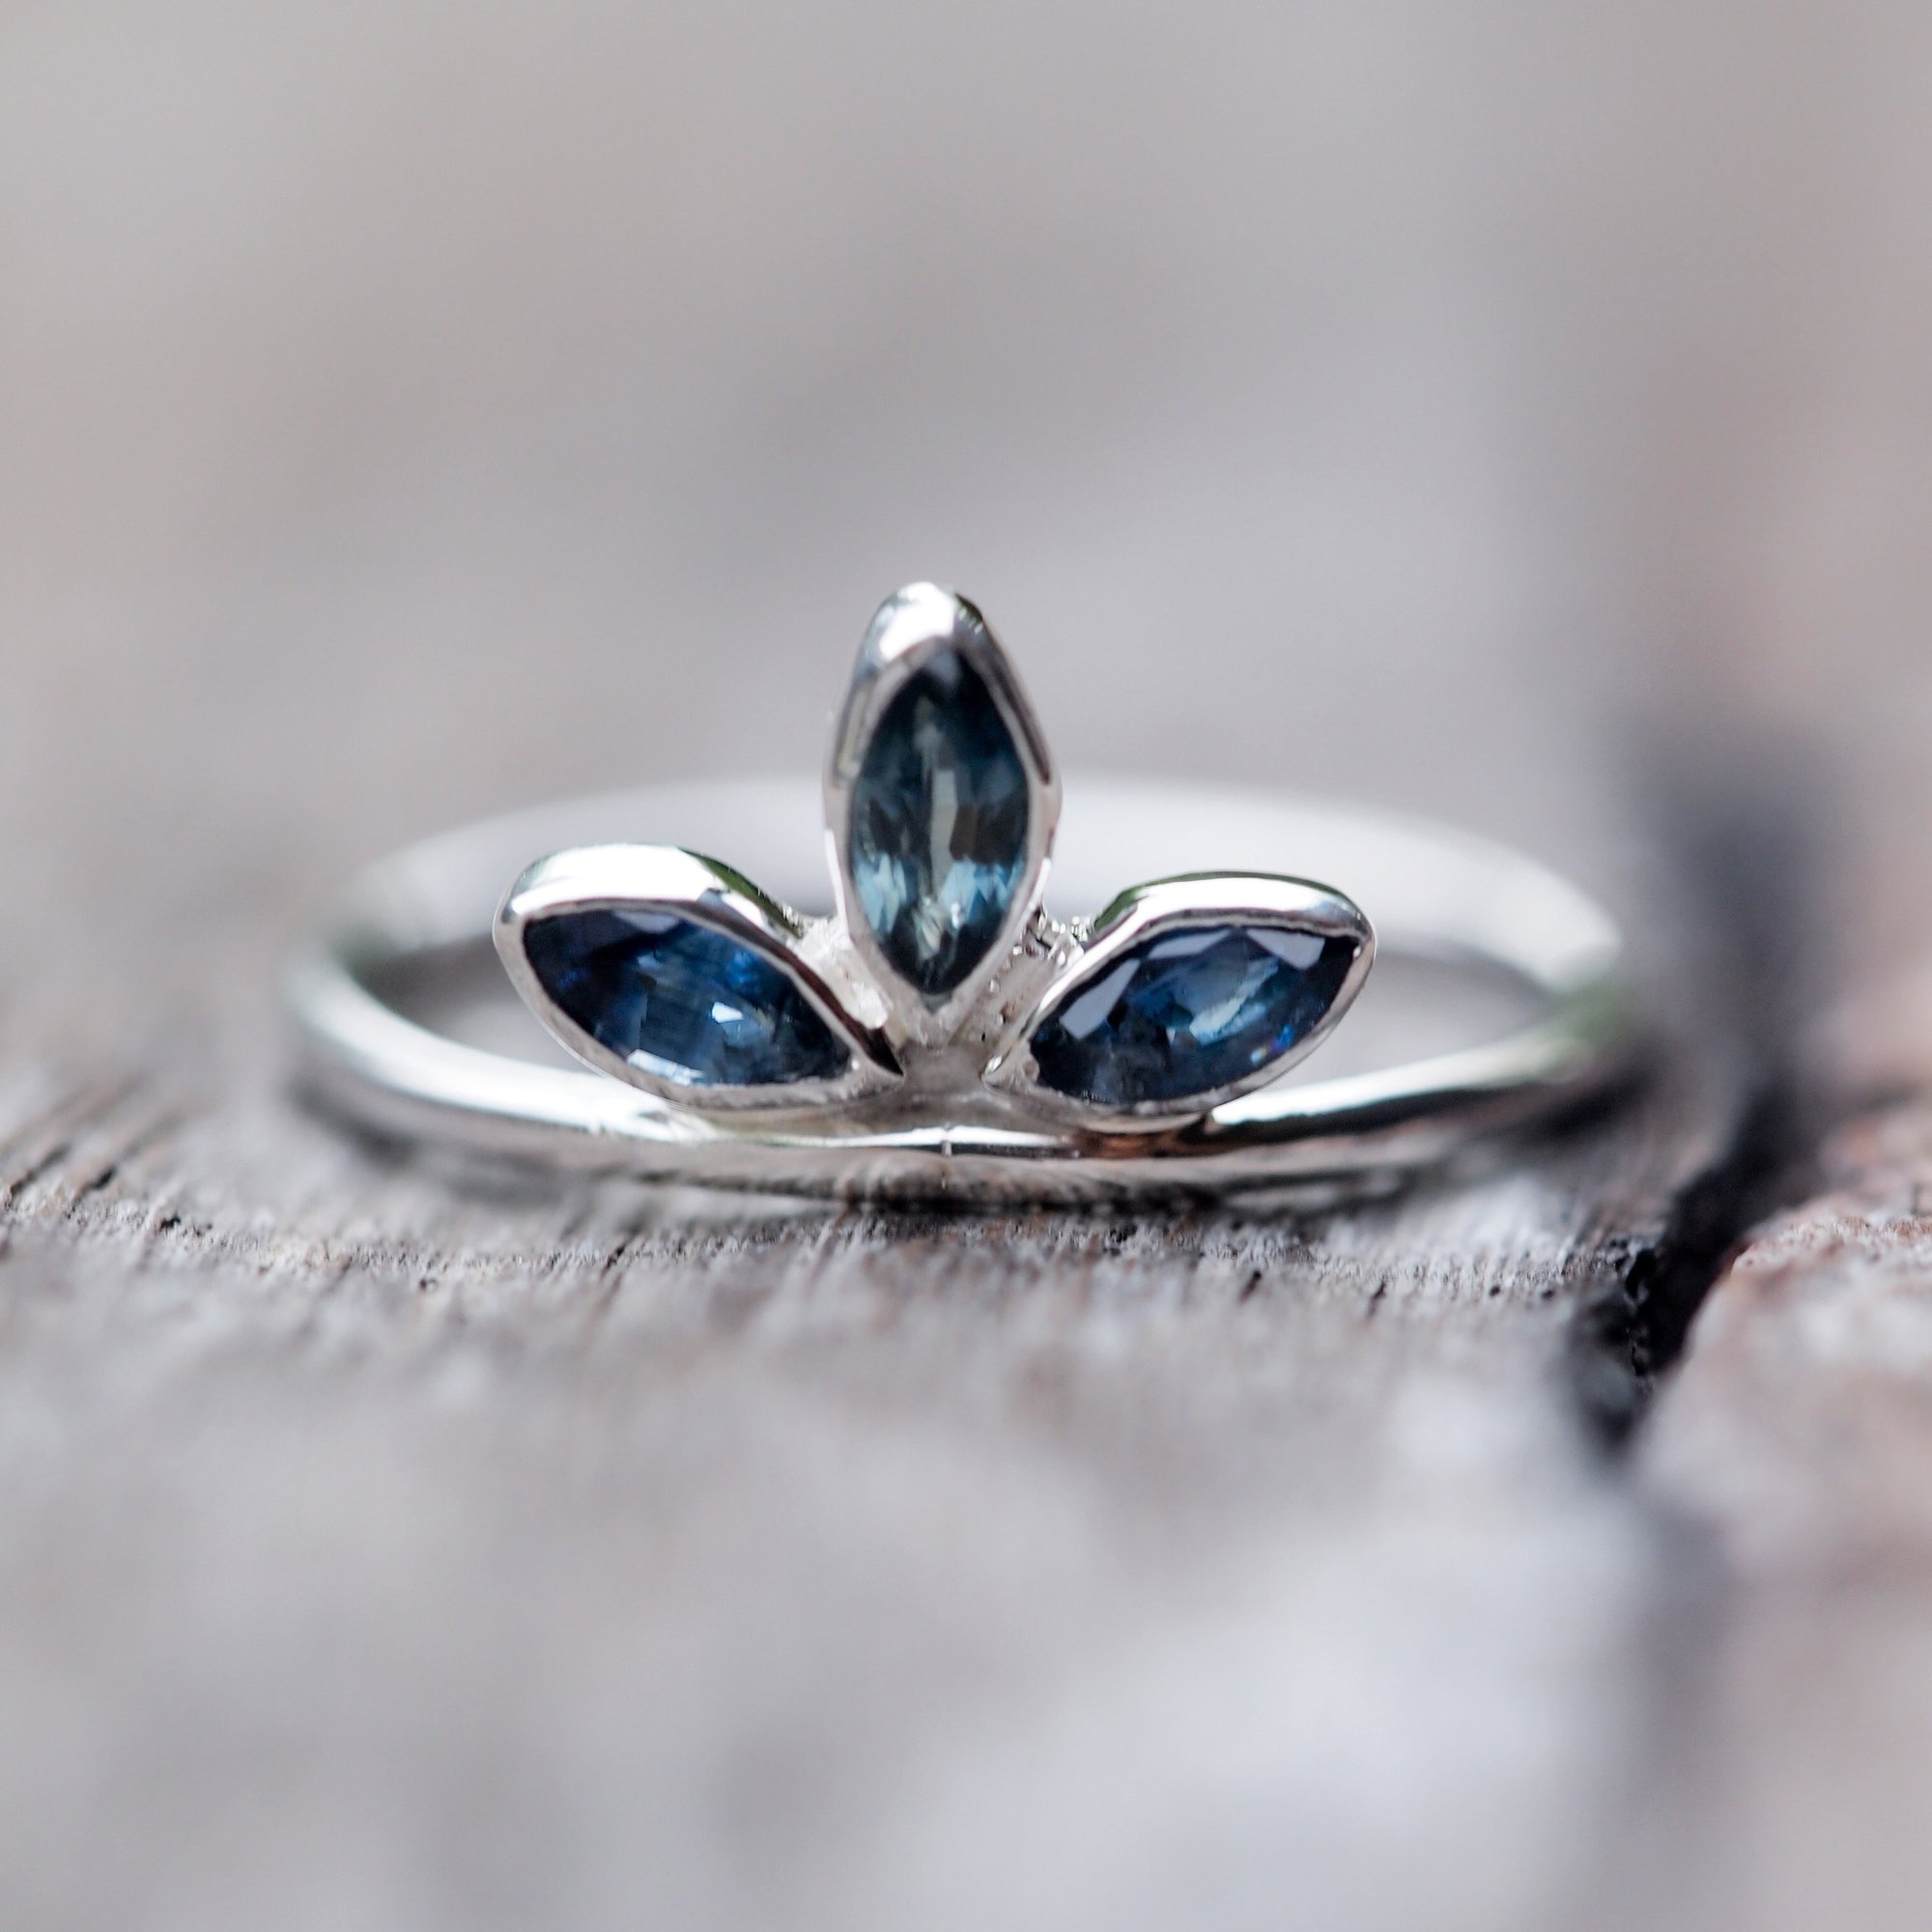 Marquise sapphire crown ring